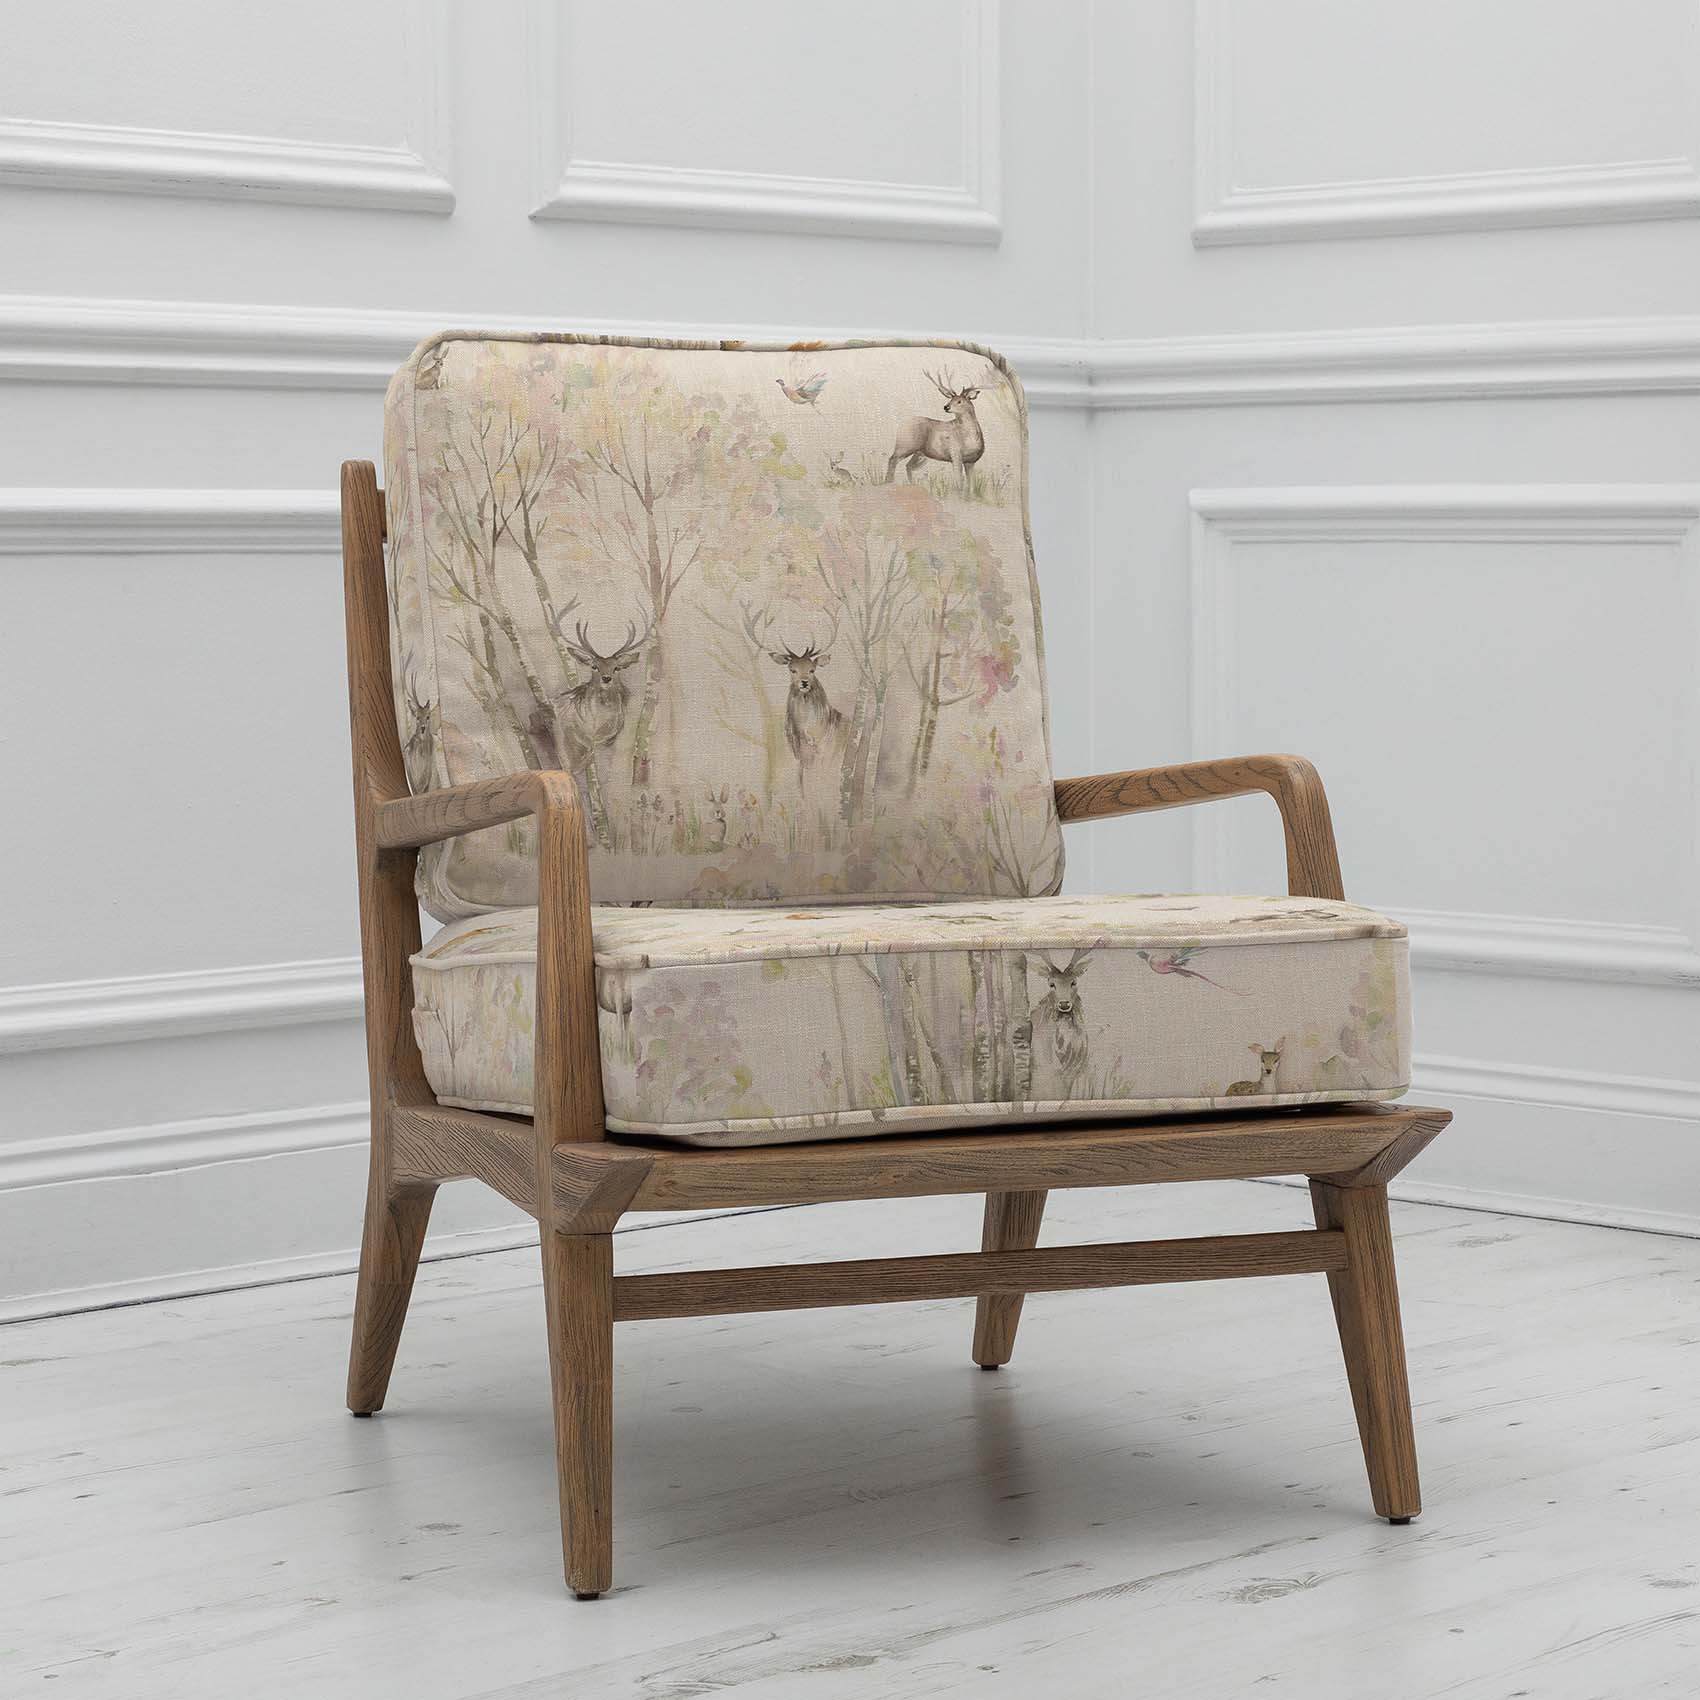 Idris Chair in Enchanted Forest (6213306581190)